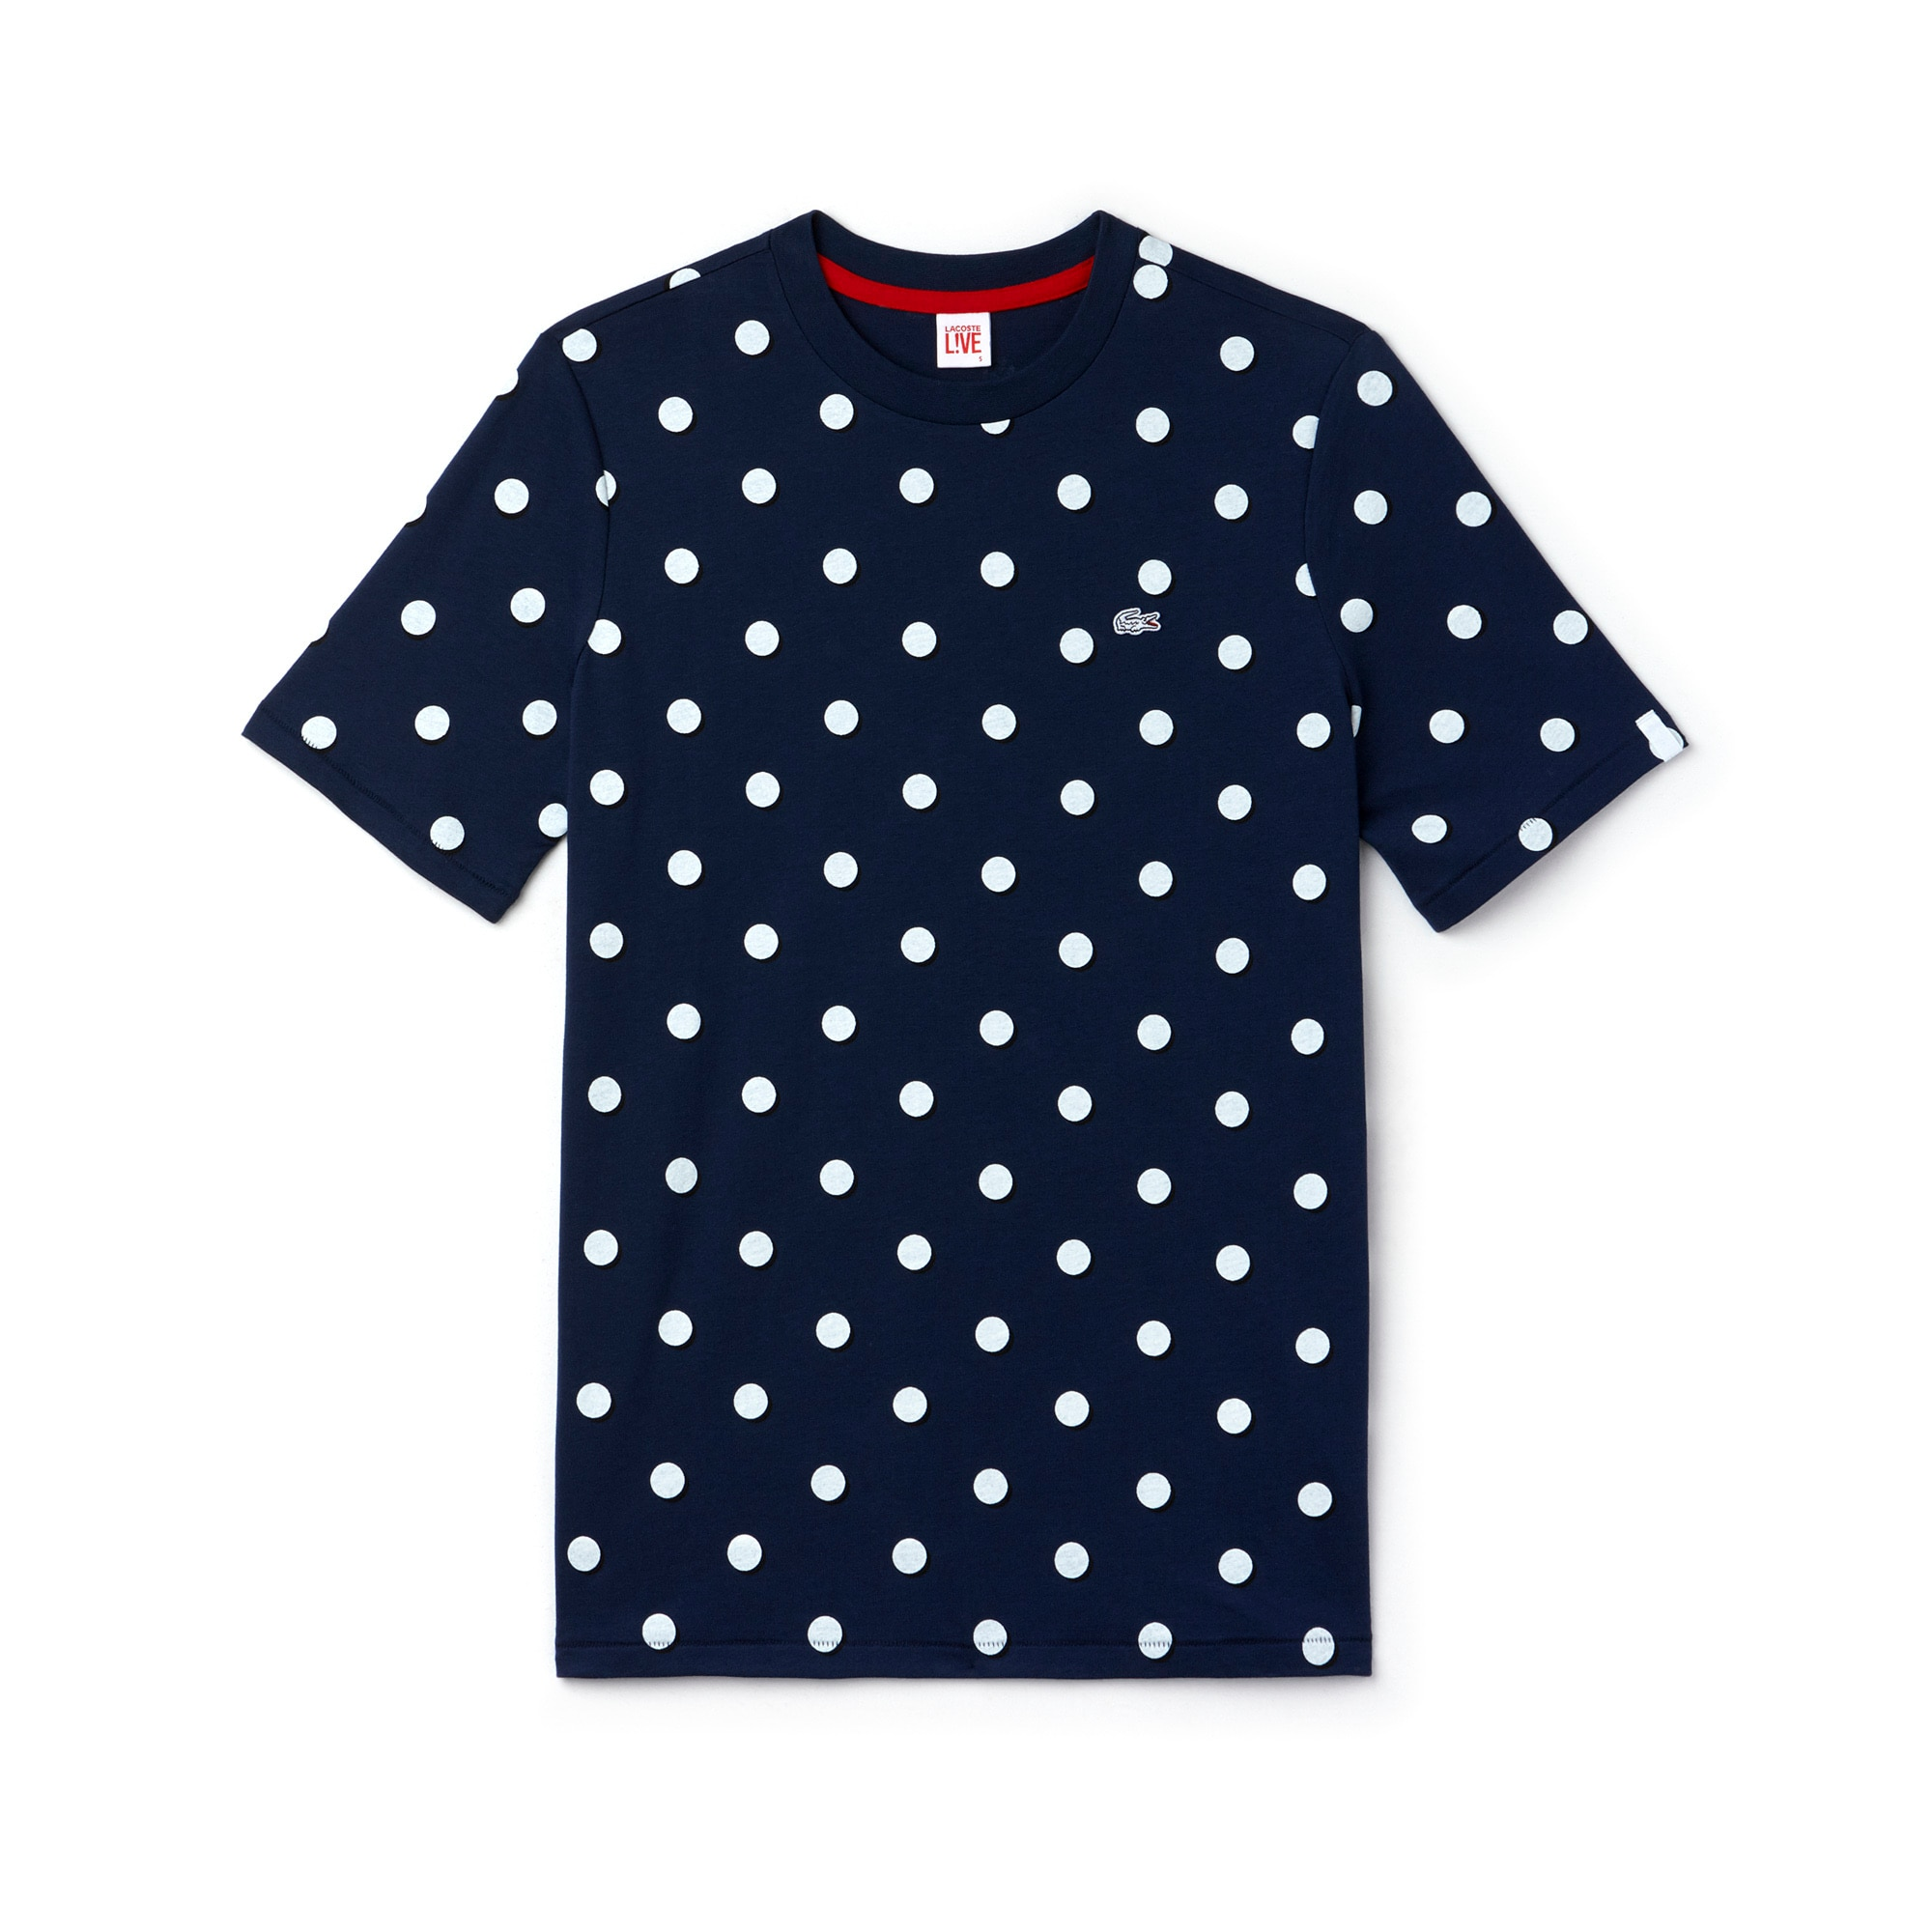 Women's L!VE Crew Neck Big Polka Dot Jersey T-shirt